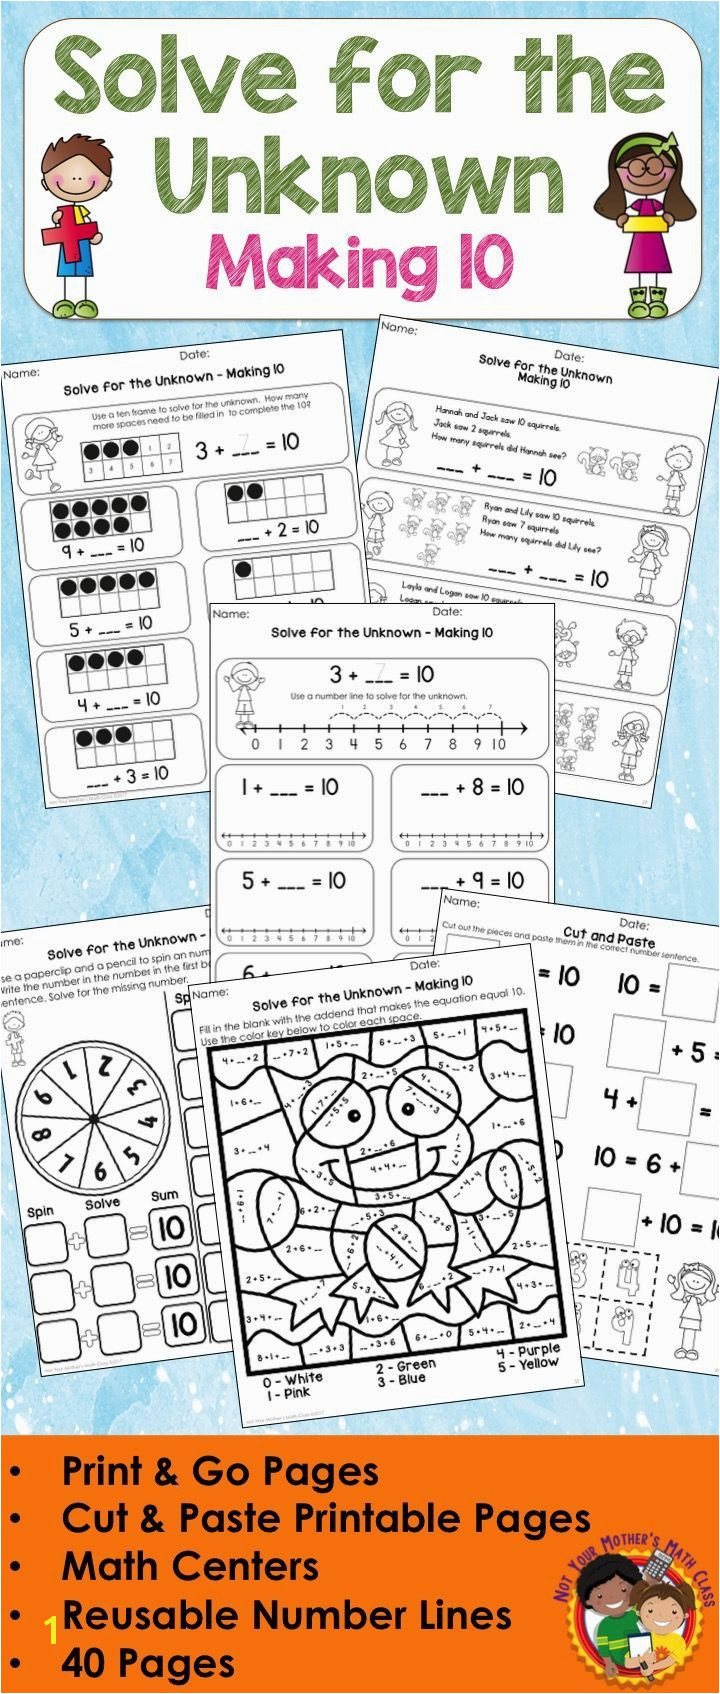 This packet has printable worksheets word problems math centers coloring sheets and more